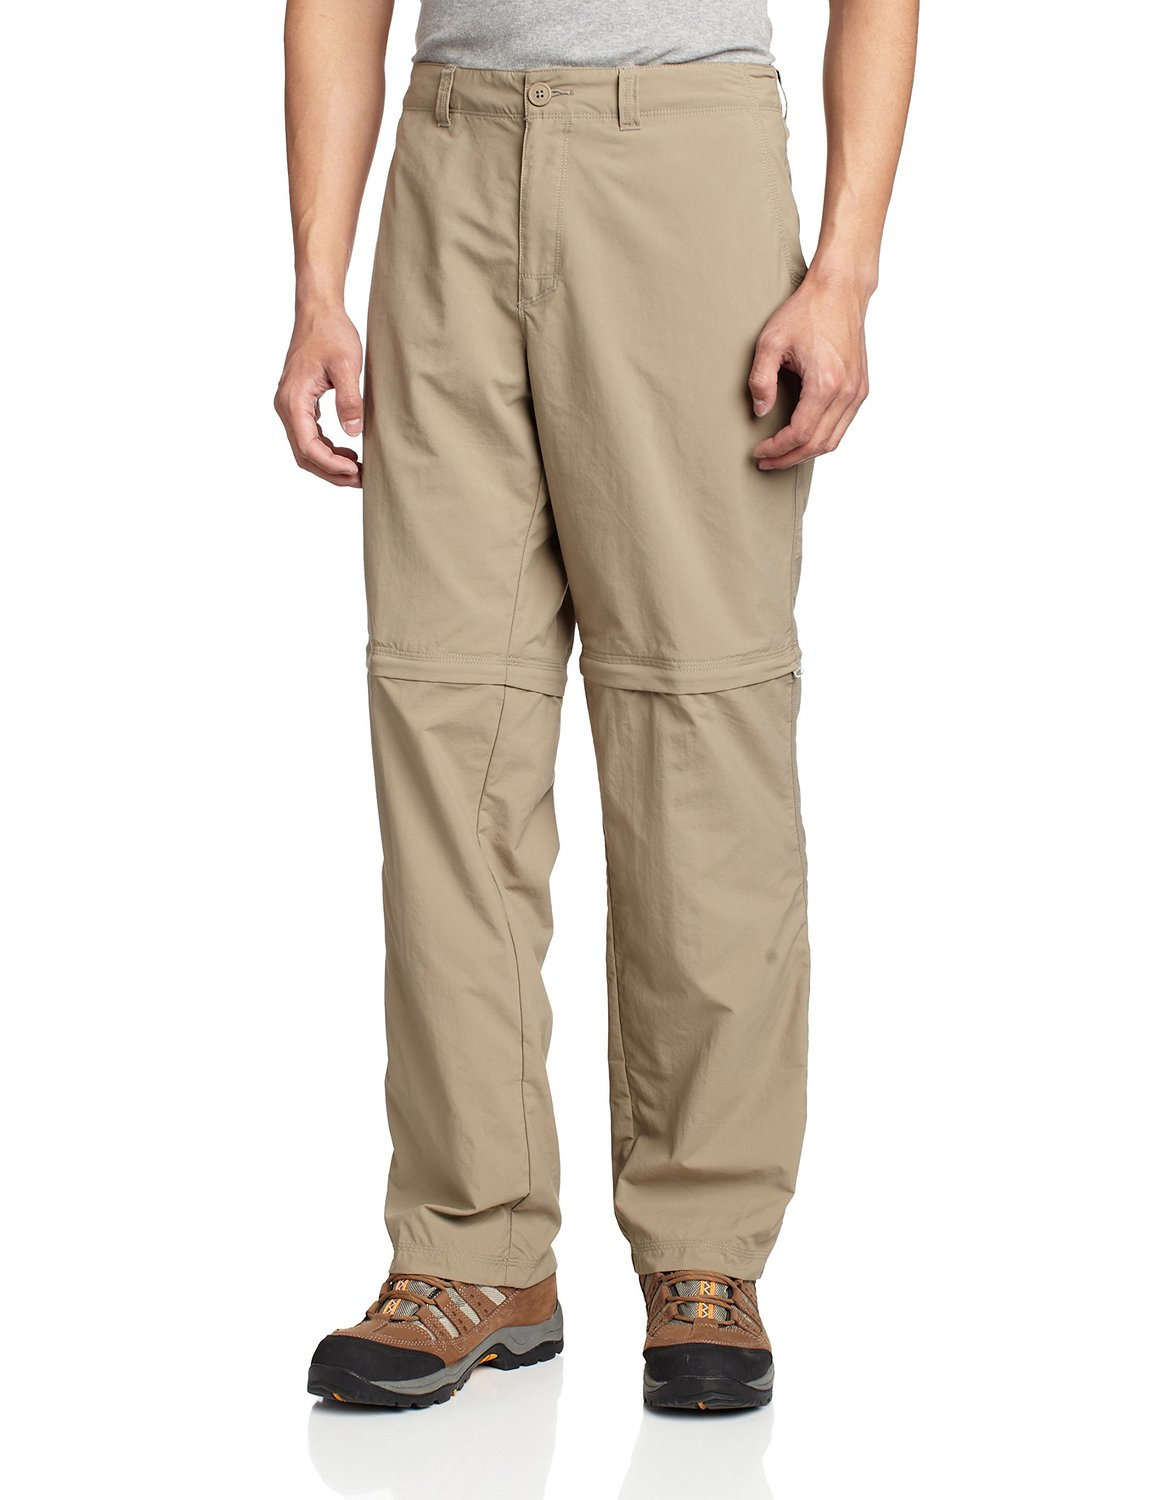 8db31a3191 Get Quotations · Mountain Hardwear Castil Convertible Hiking Pants Mens